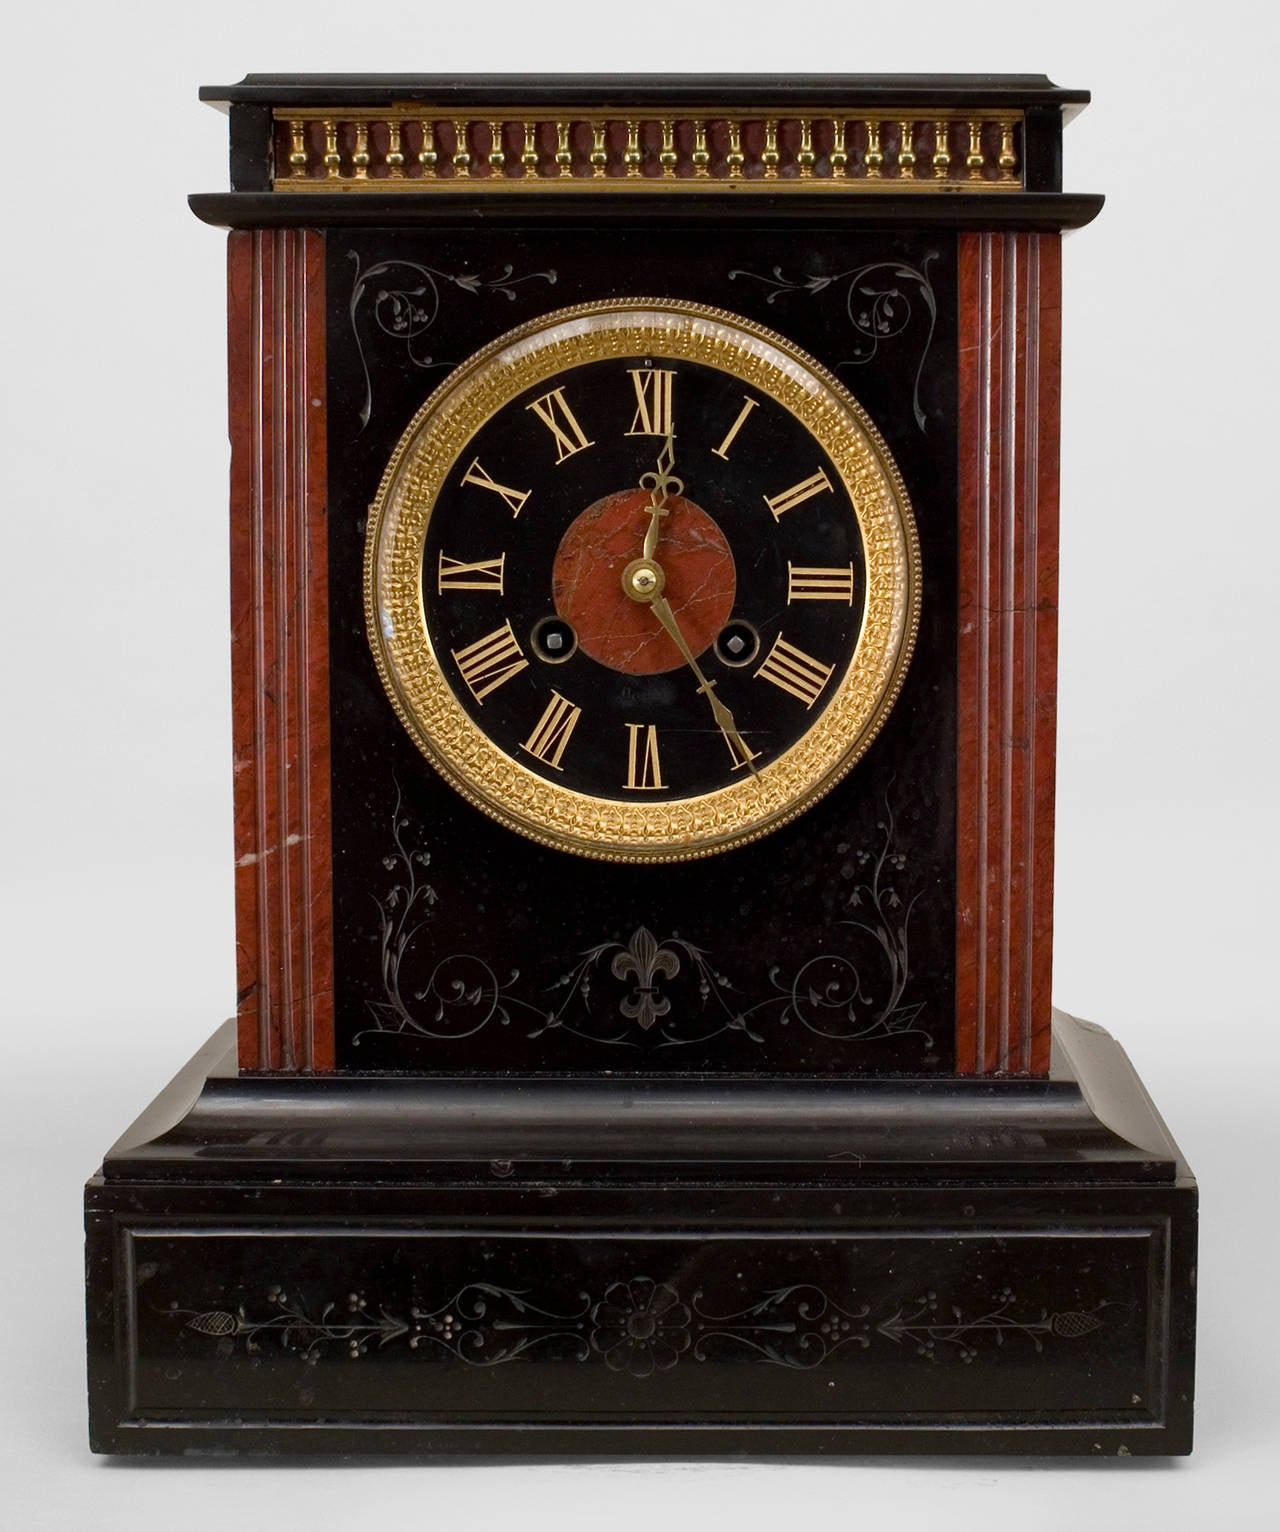 French black marble mantel clock with rosso antic marble column sides and a face numbered in etched and gilded roman numerals (Non-operational).